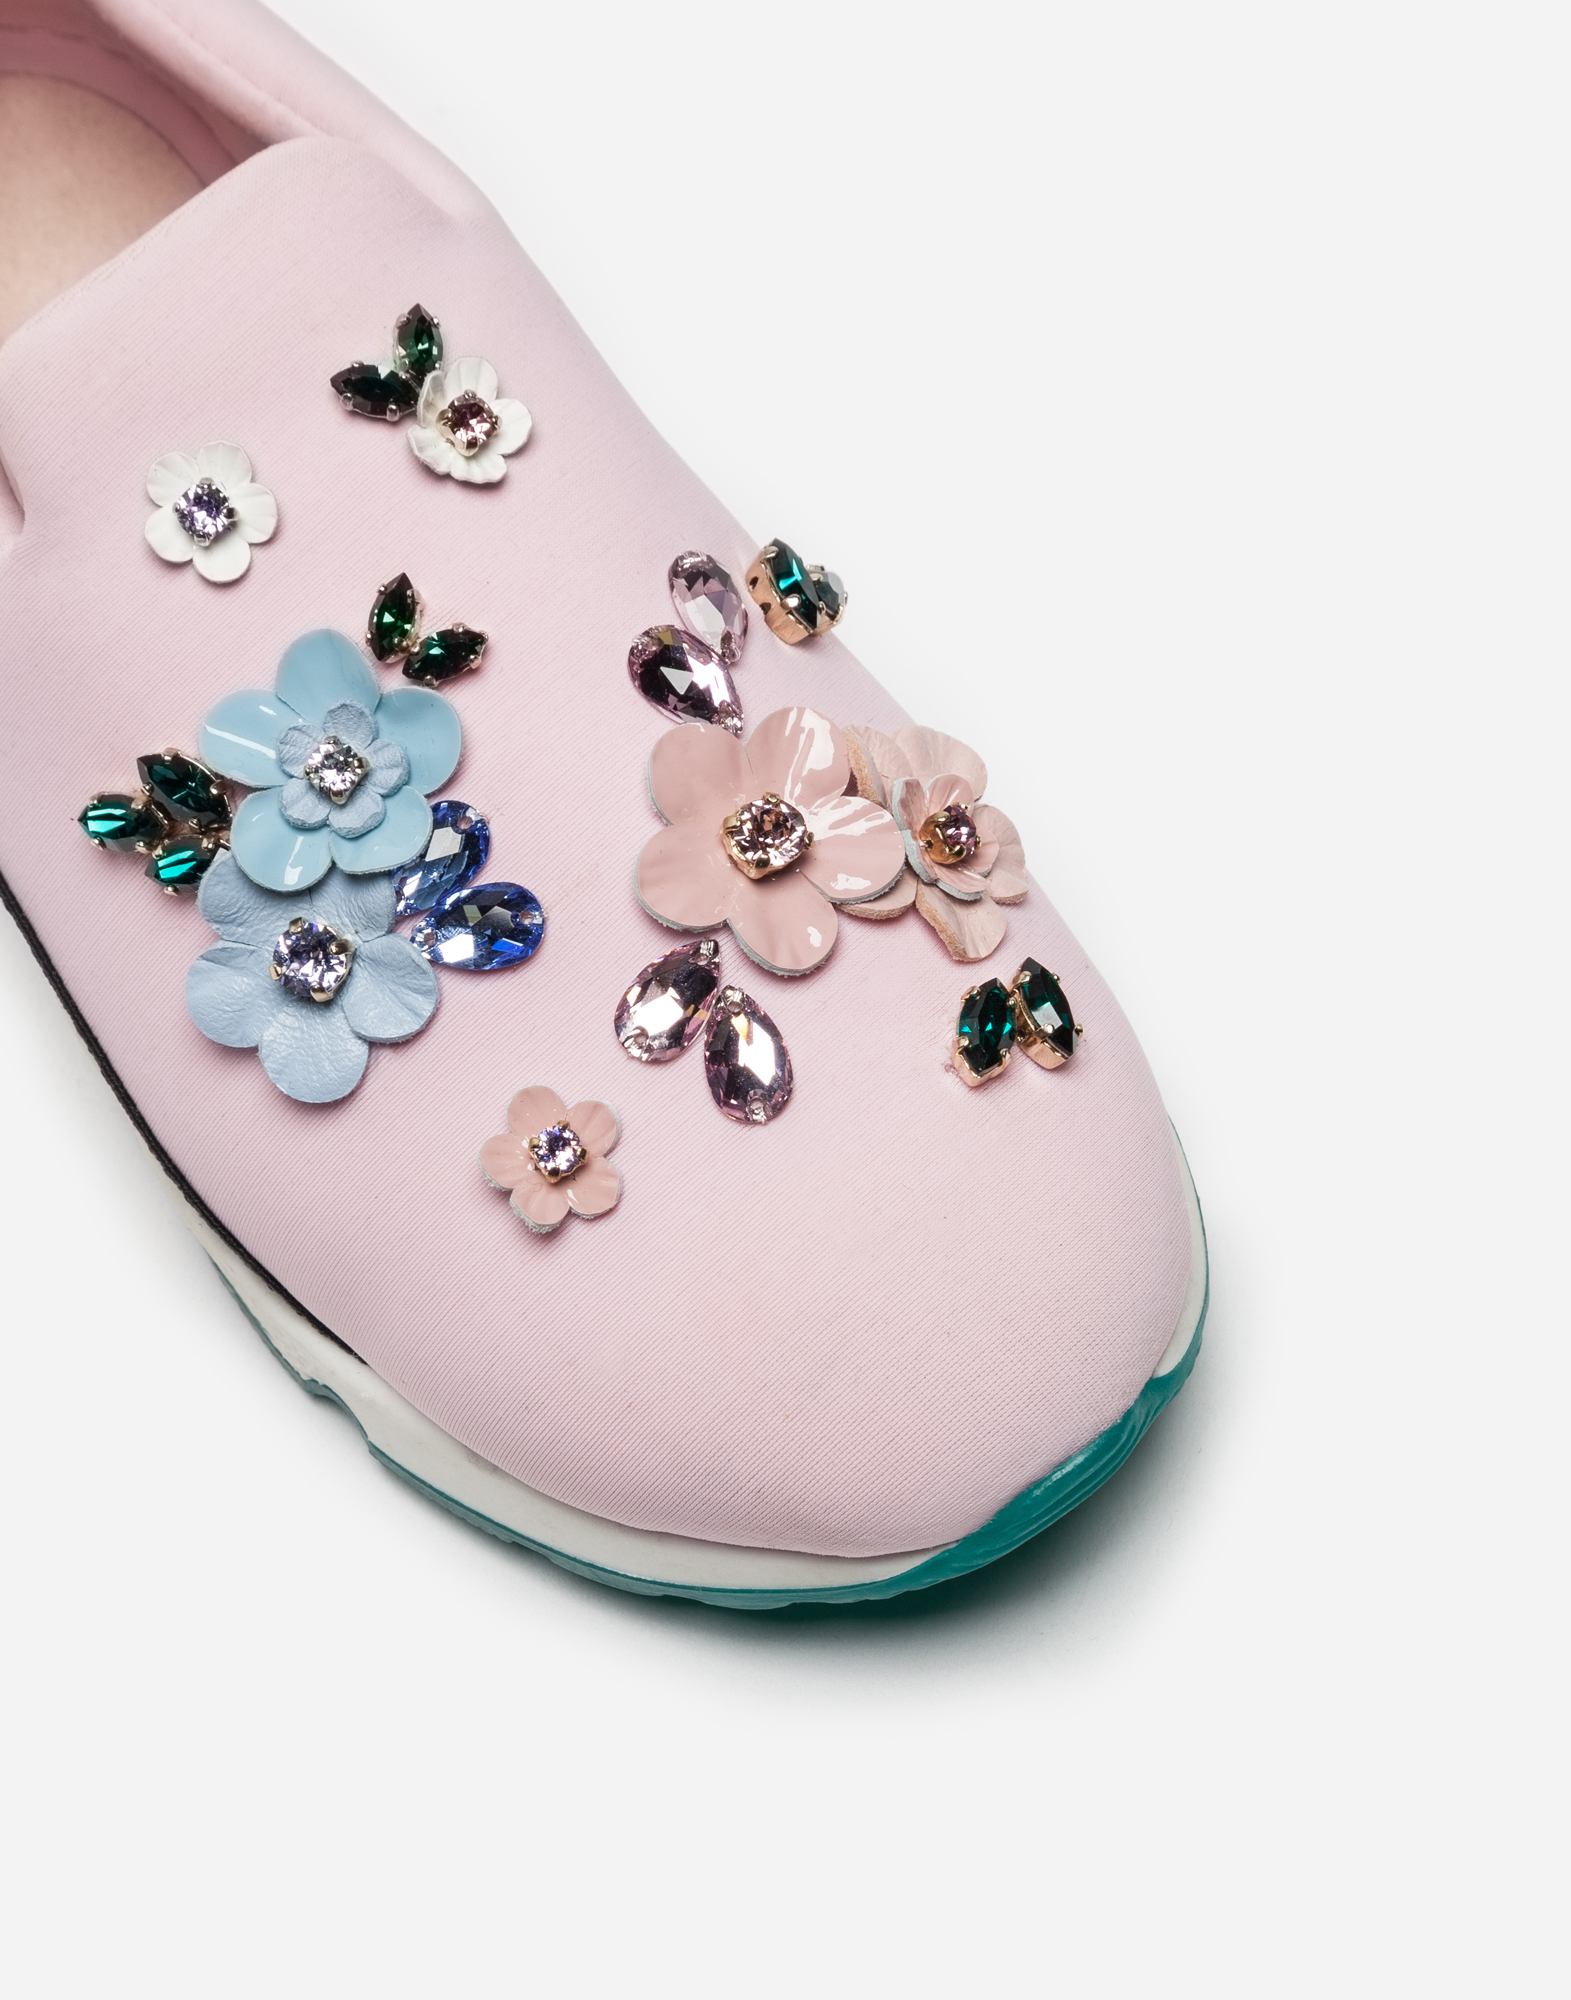 Dolce&Gabbana SLIP-ON SNEAKERS WITH APPLIQUÉ DETAILS